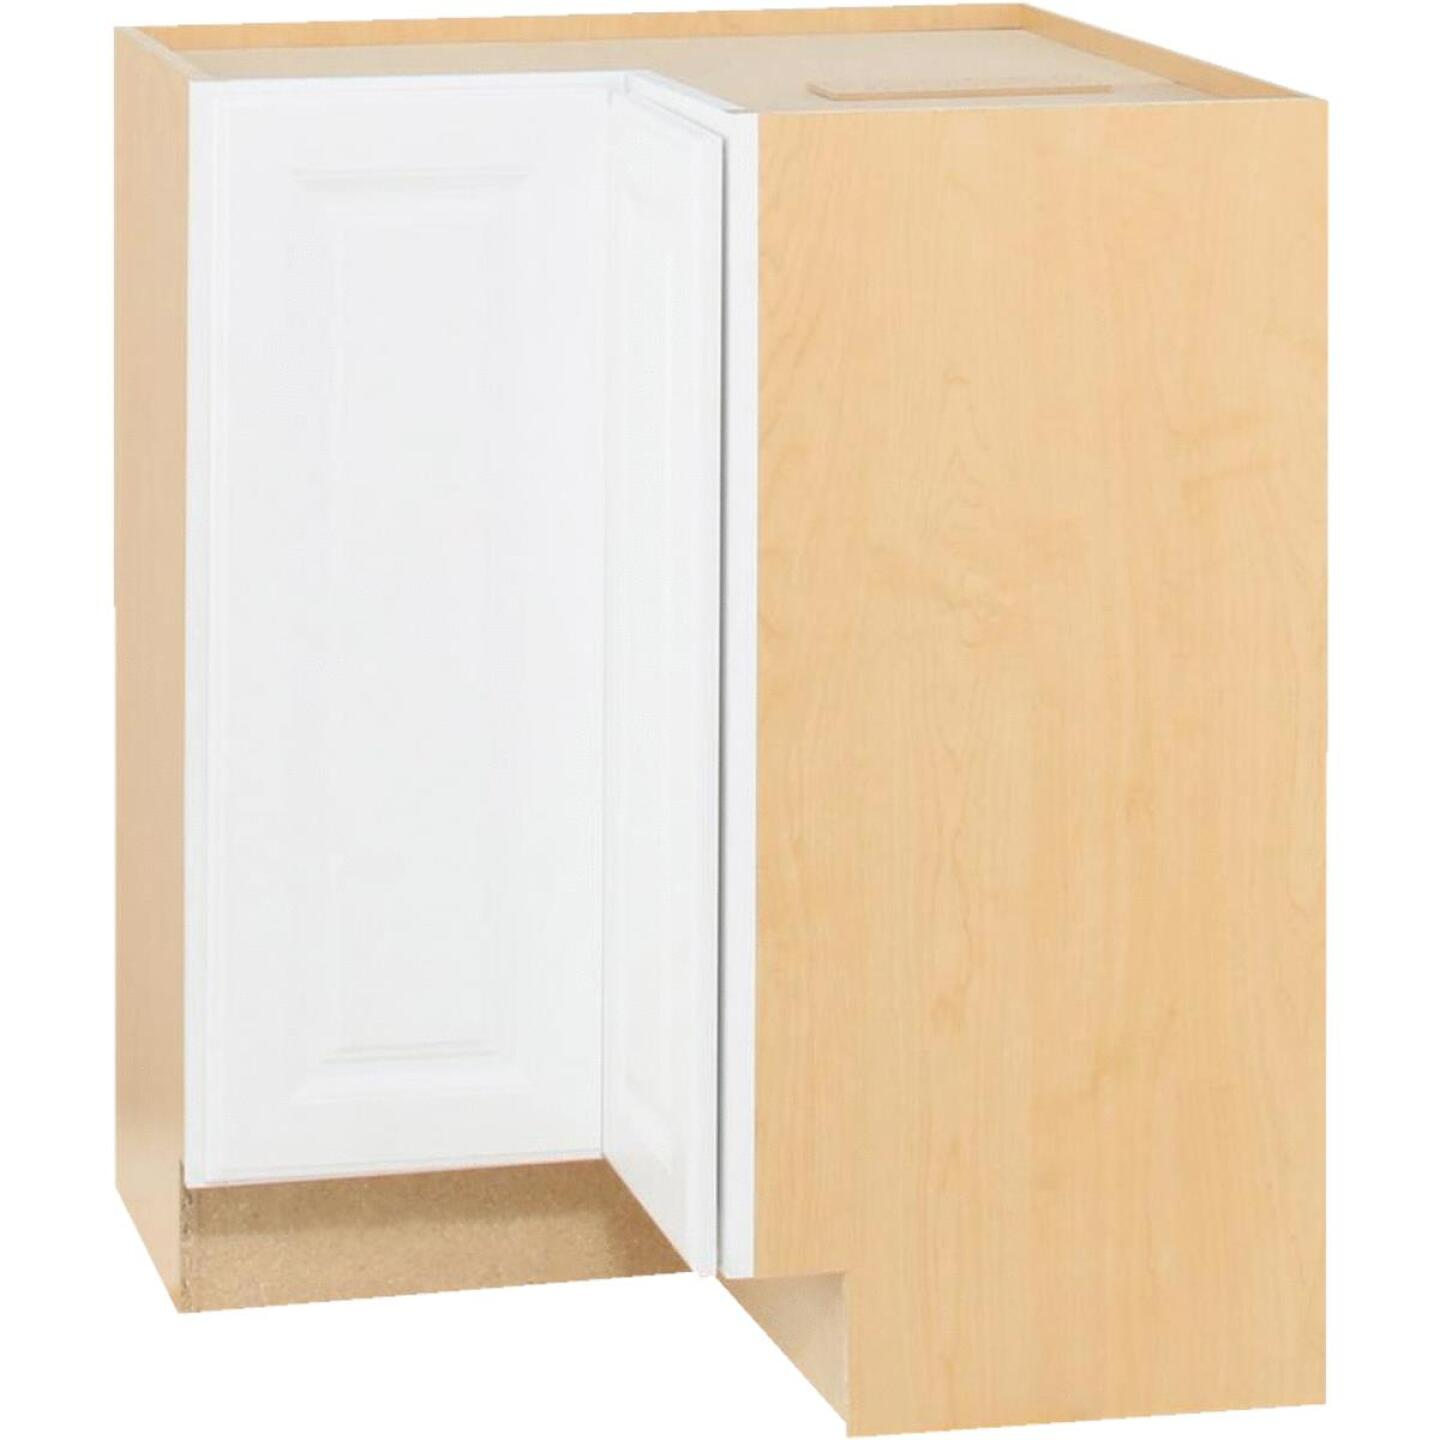 Continental Cabinets Hamilton 36 In. W x 34-1/2 In. H x 24 In. D Satin White Maple Lazy Susan Corner Base Kitchen Cabinet Image 3